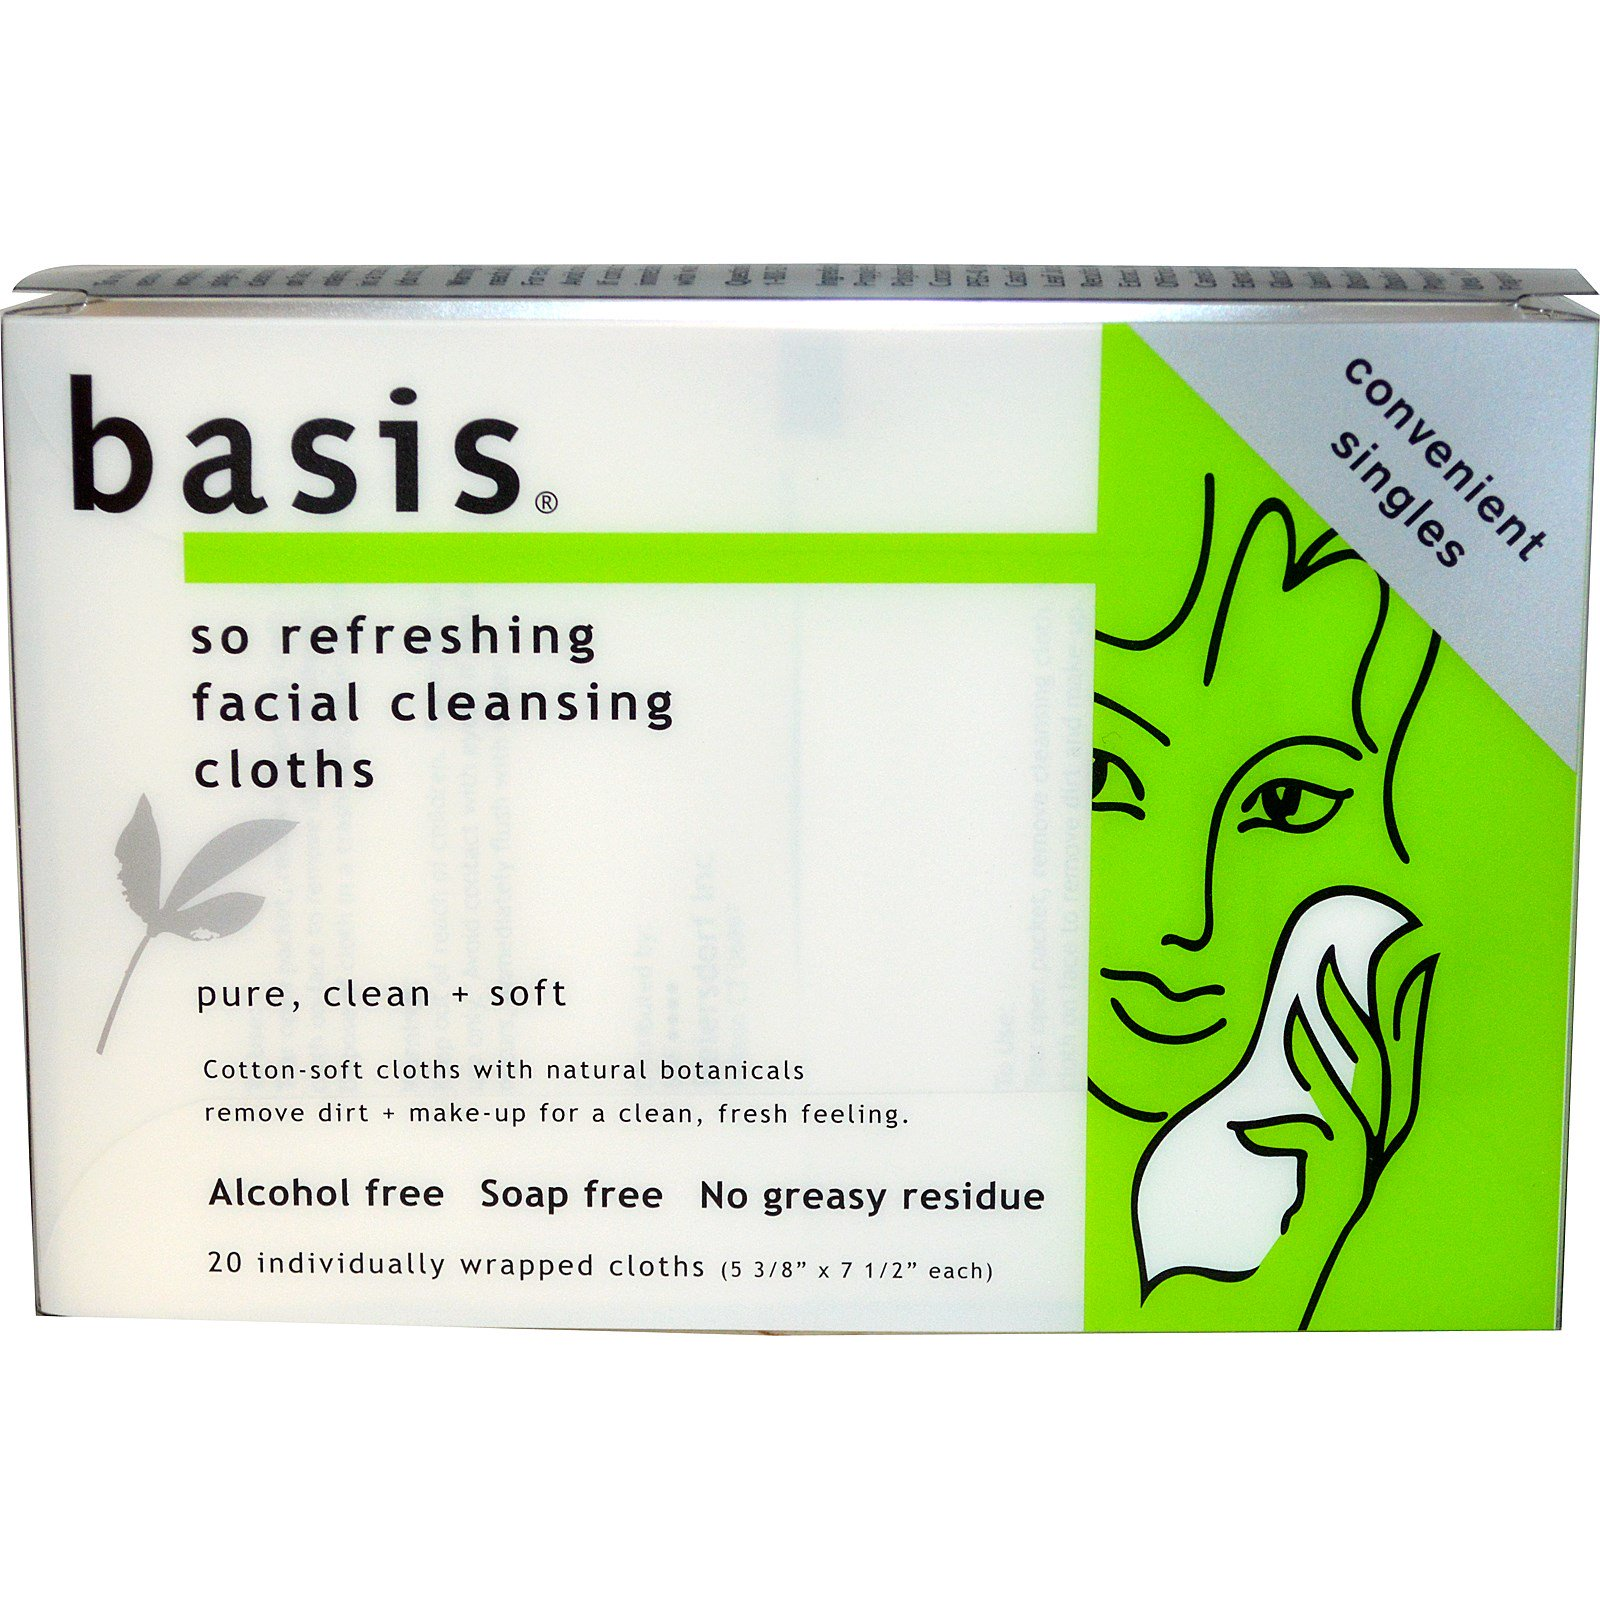 Basis facial cleansing cloths